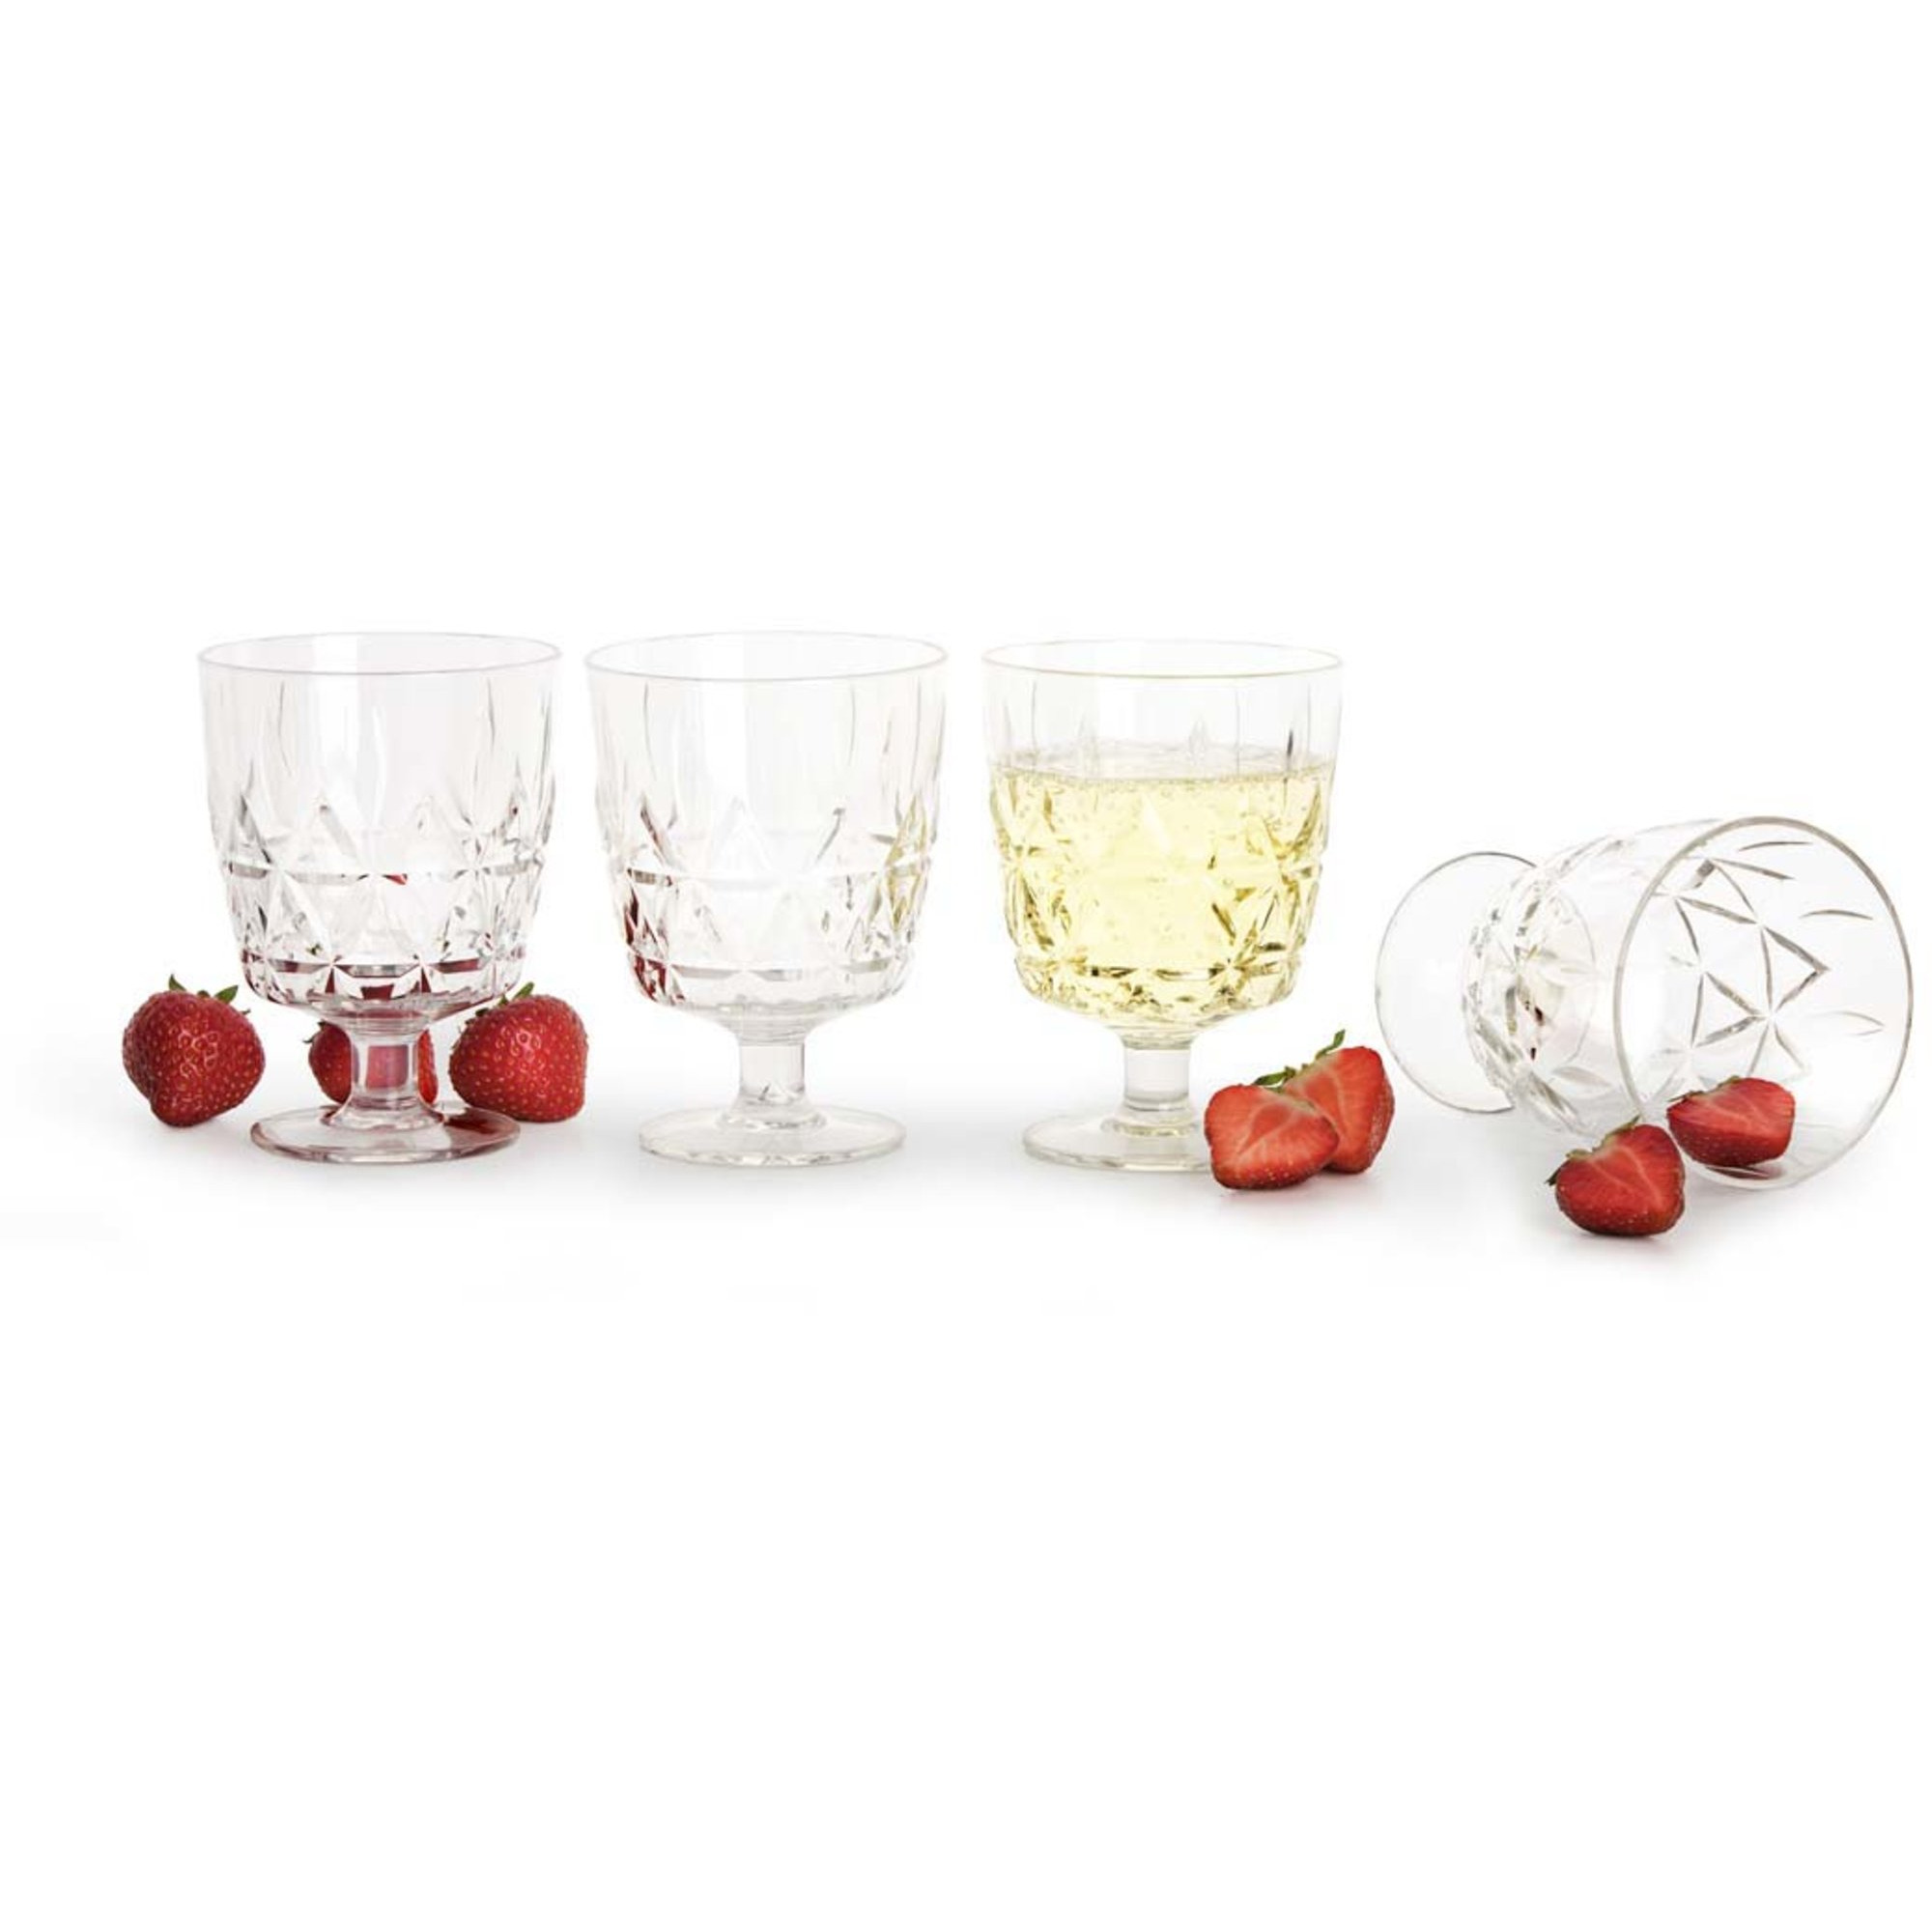 Sagaform Picknick Glas 4-pack